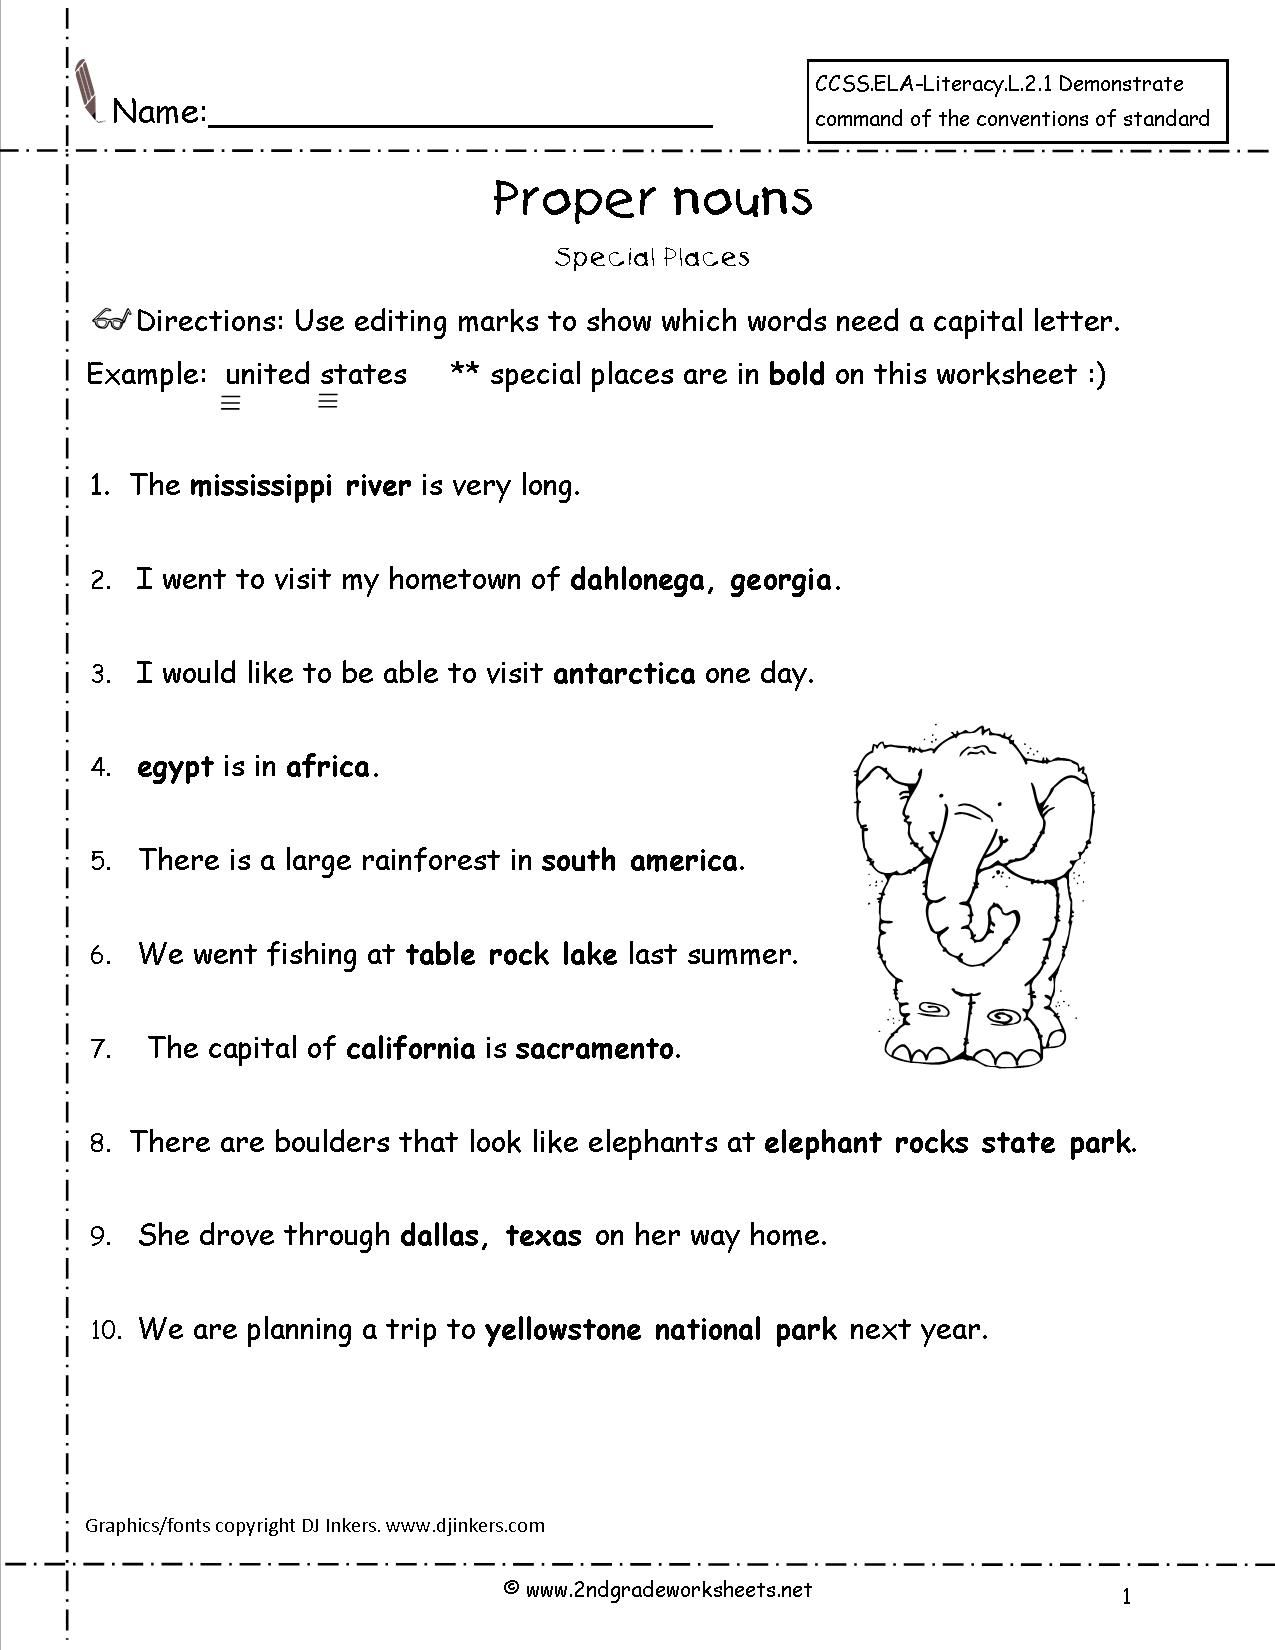 proper nouns worksheet Language Literacy Pinterest